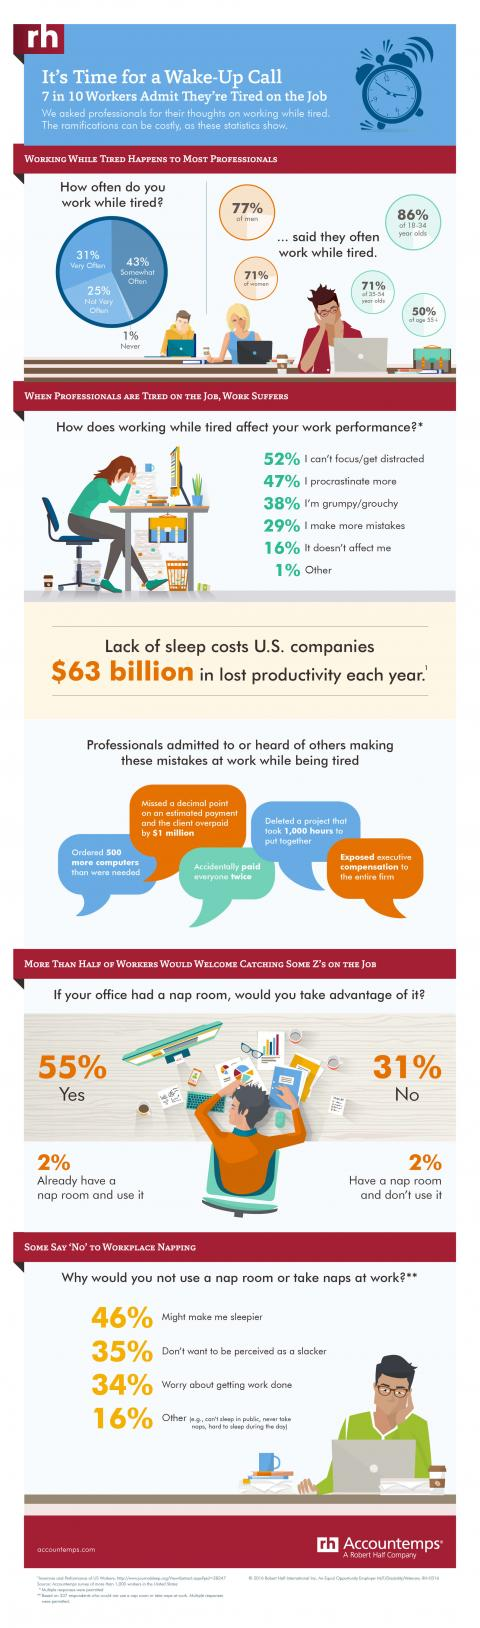 Infographic featuring results of an Accountemps survey about professionals who are tired on the job